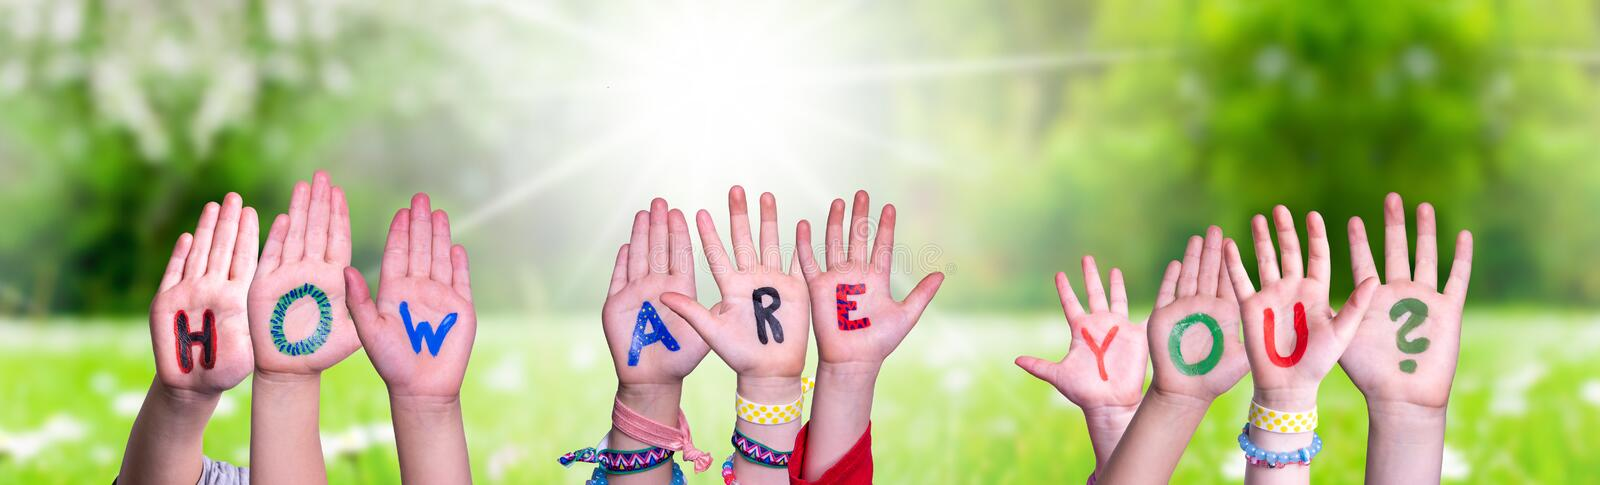 Children Hands Building Word How Are You, Grass Meadow. Children Hands Building Colorful English Word How Are You. Sunny Green Grass Meadow As Background stock image